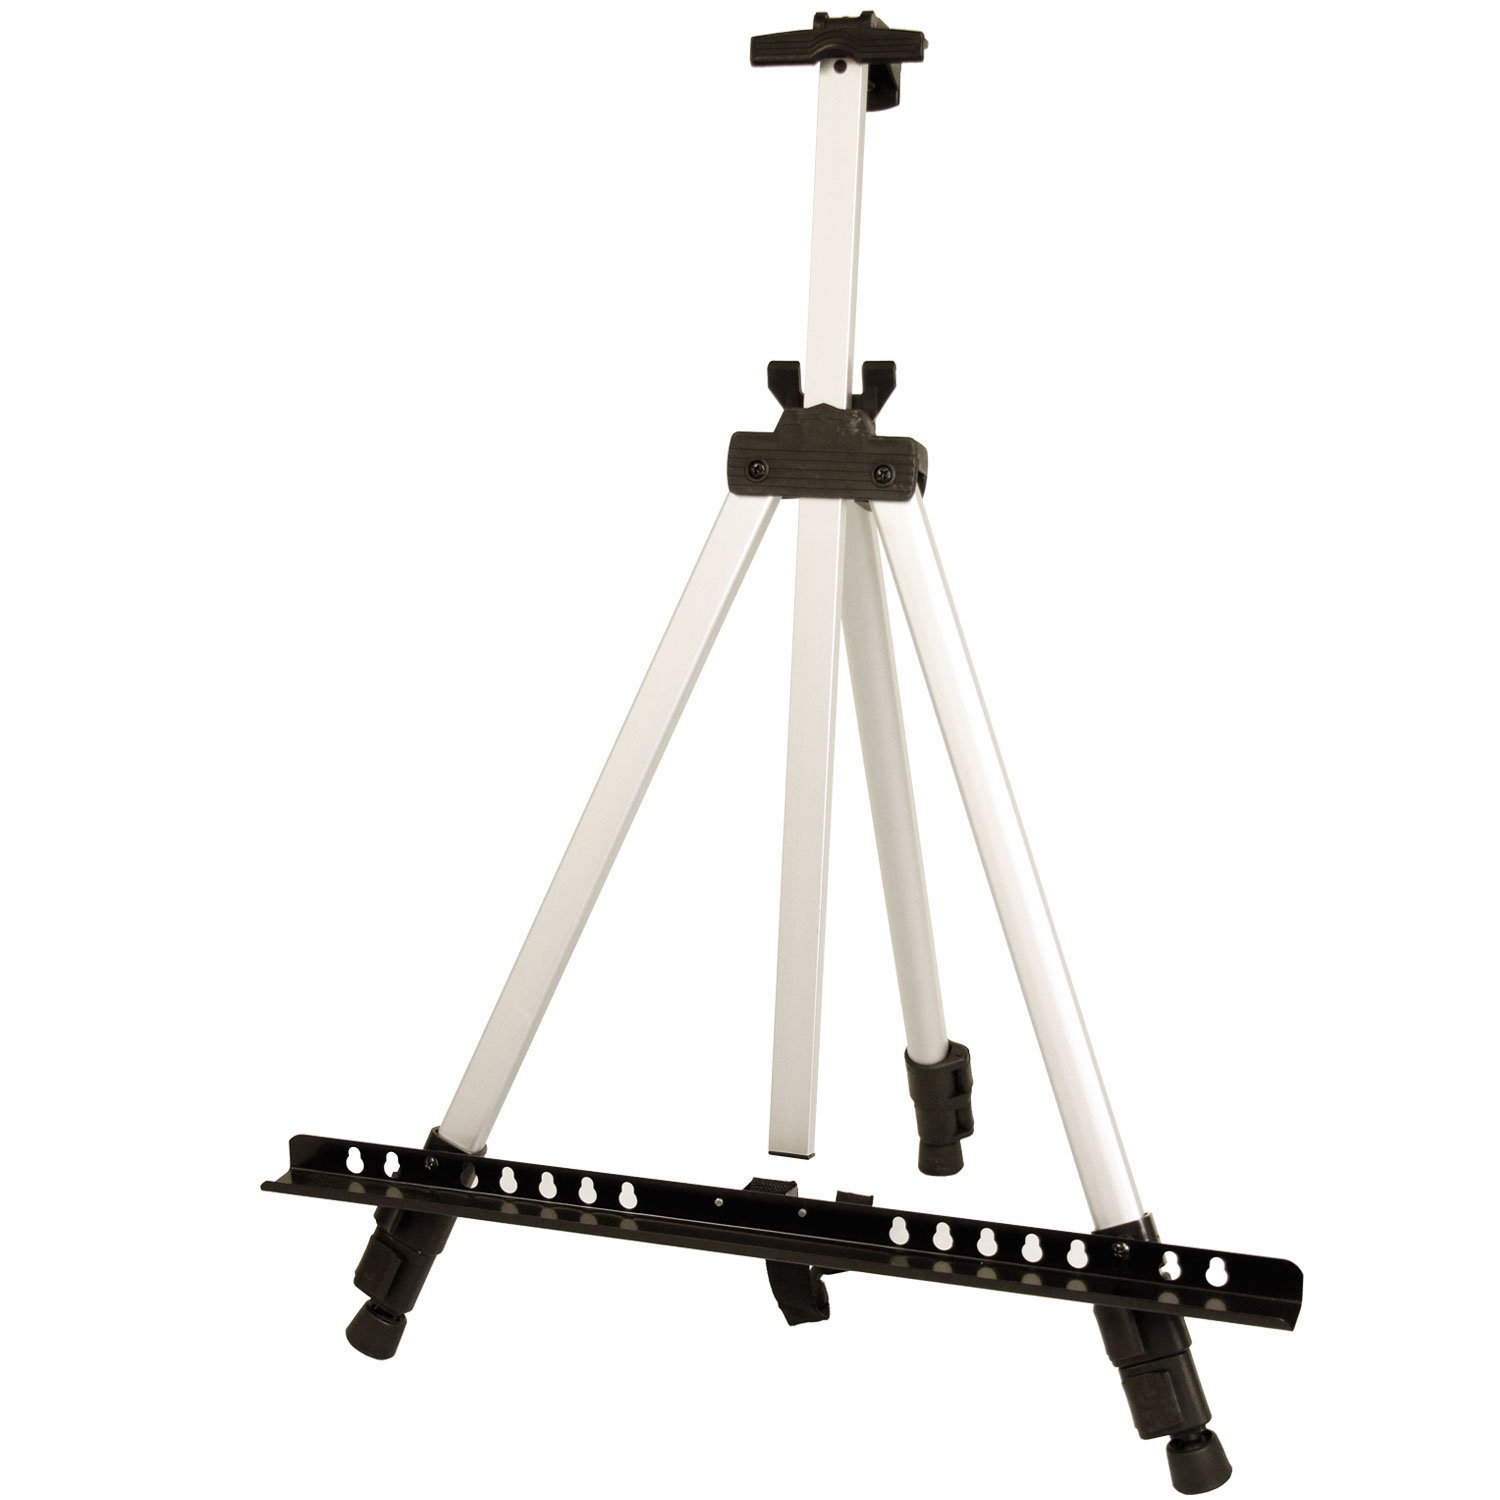 10-Easels US Art Supply Silver 65inch Tall Lightweight Aluminum Field Floor Table Easel with Bag